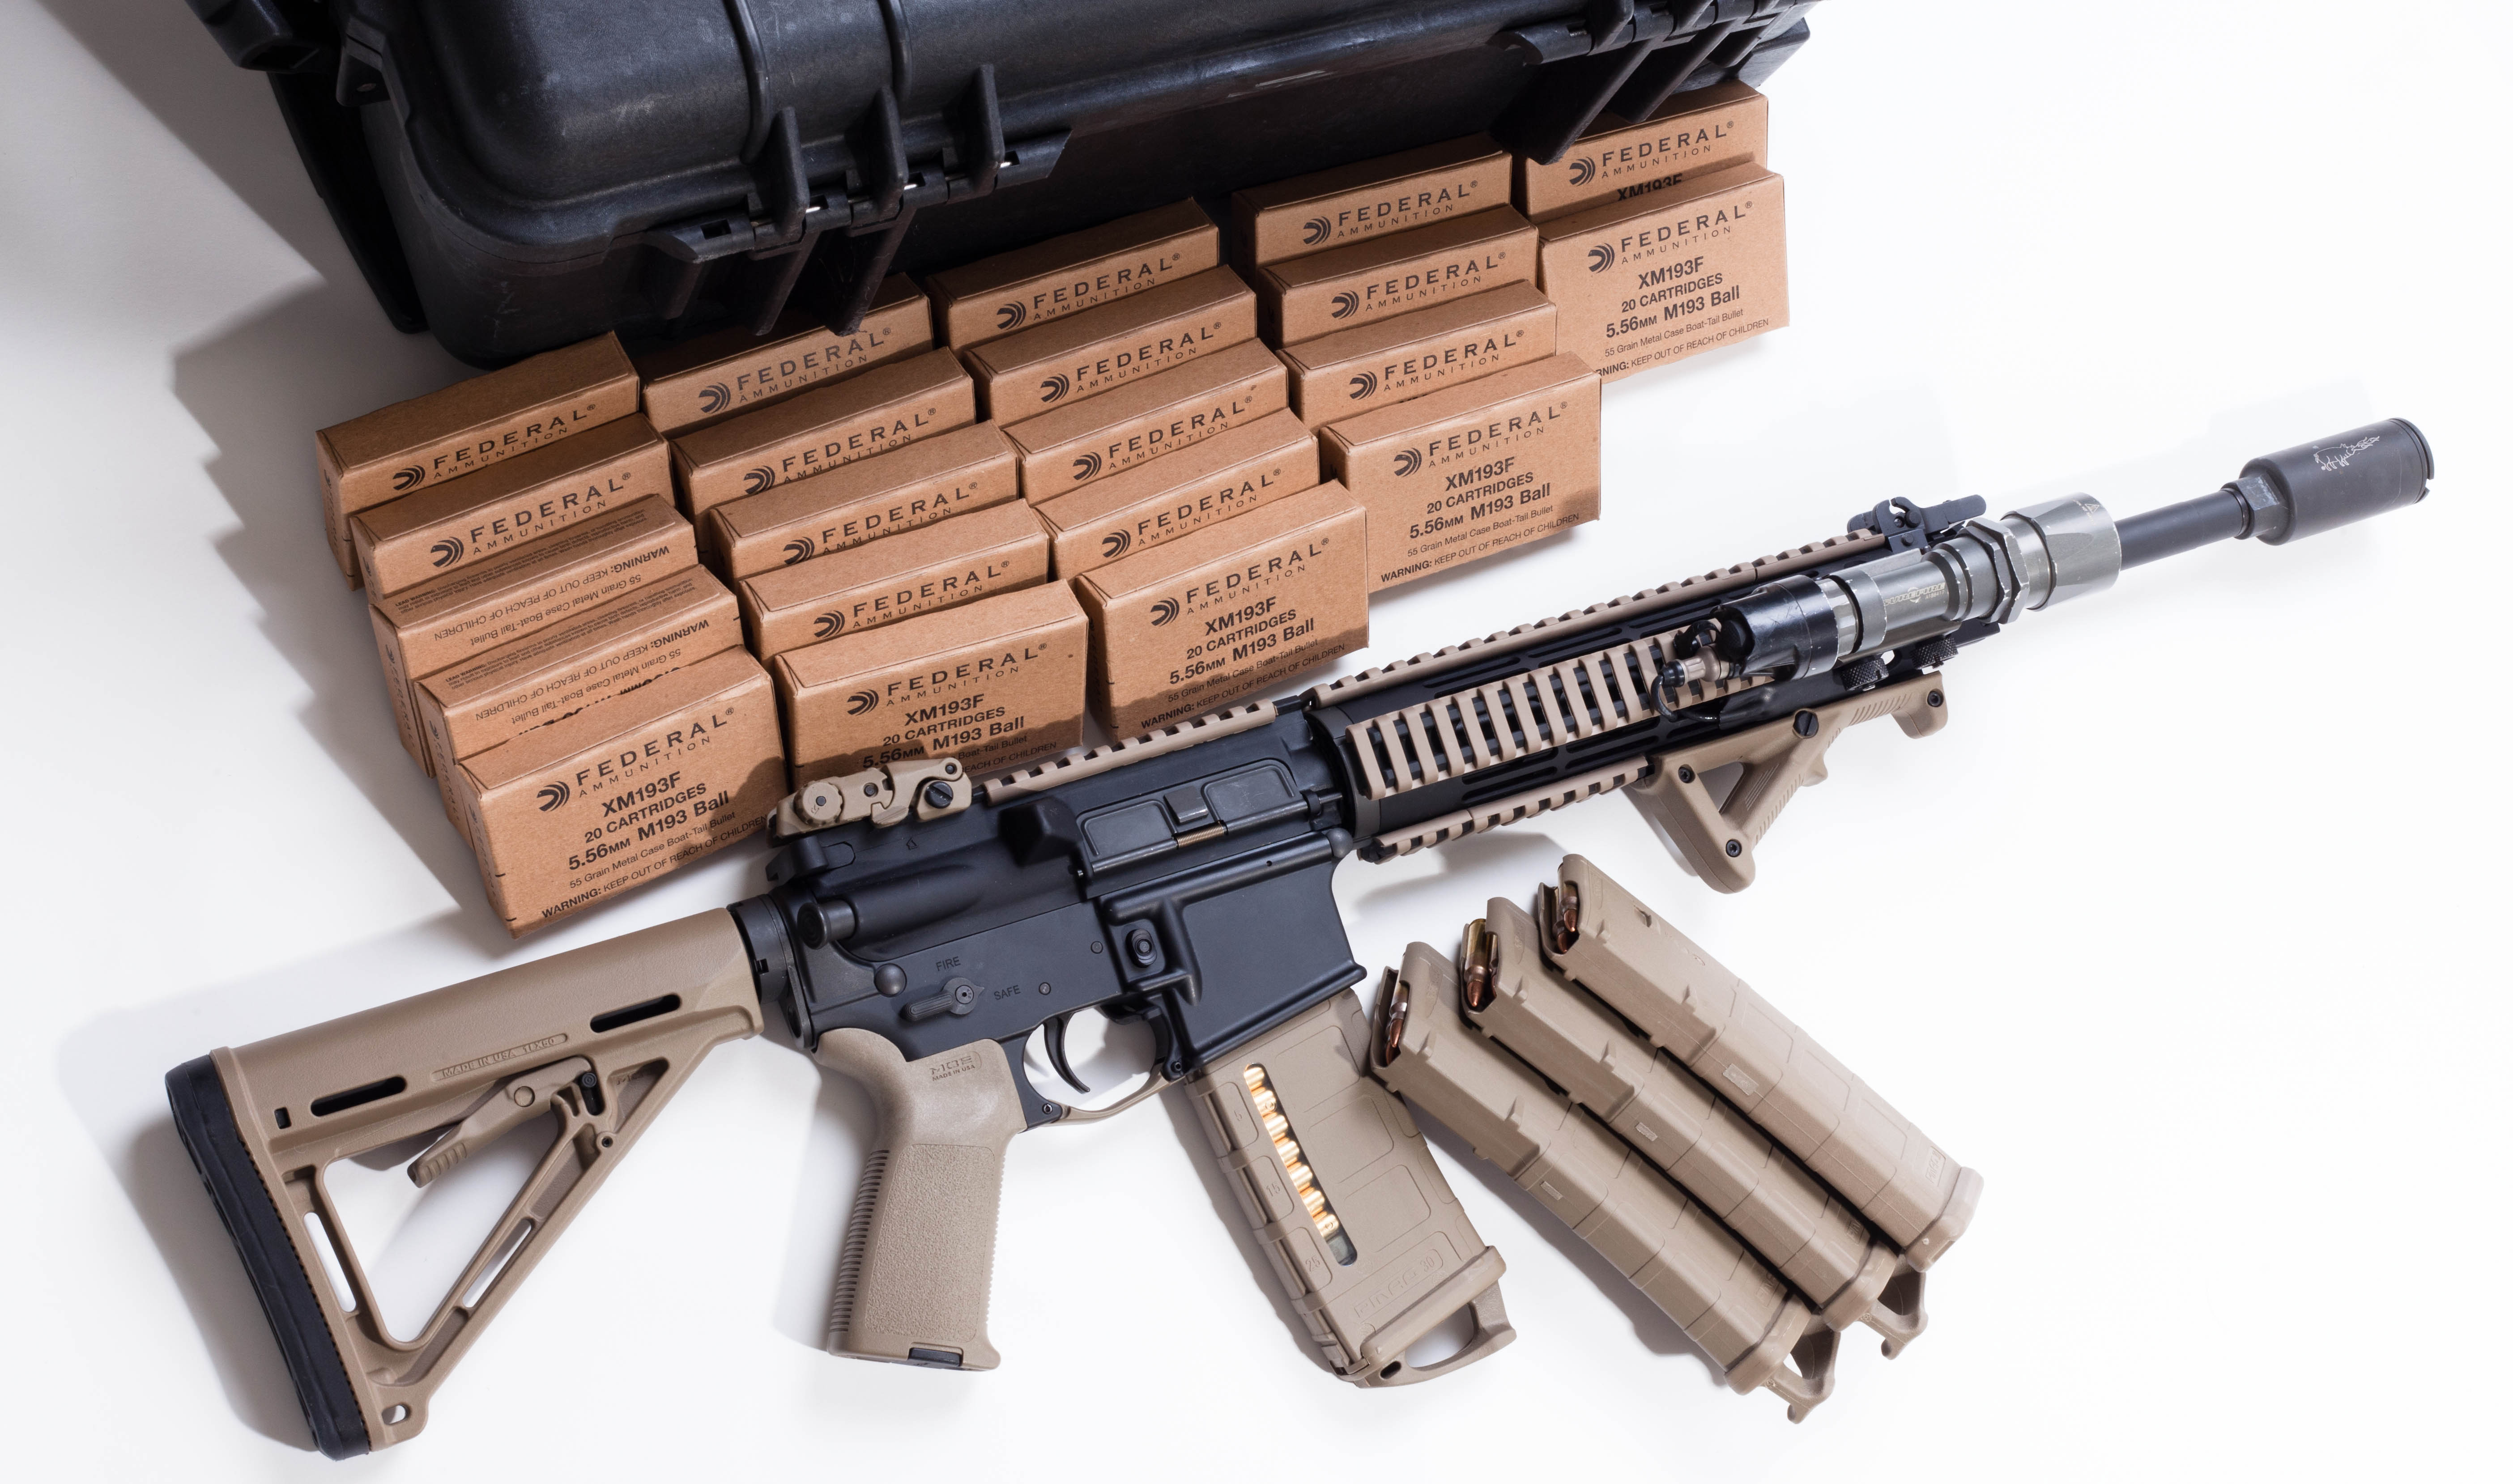 Top 5 Reasons Why People Love To Own Their Own Ar